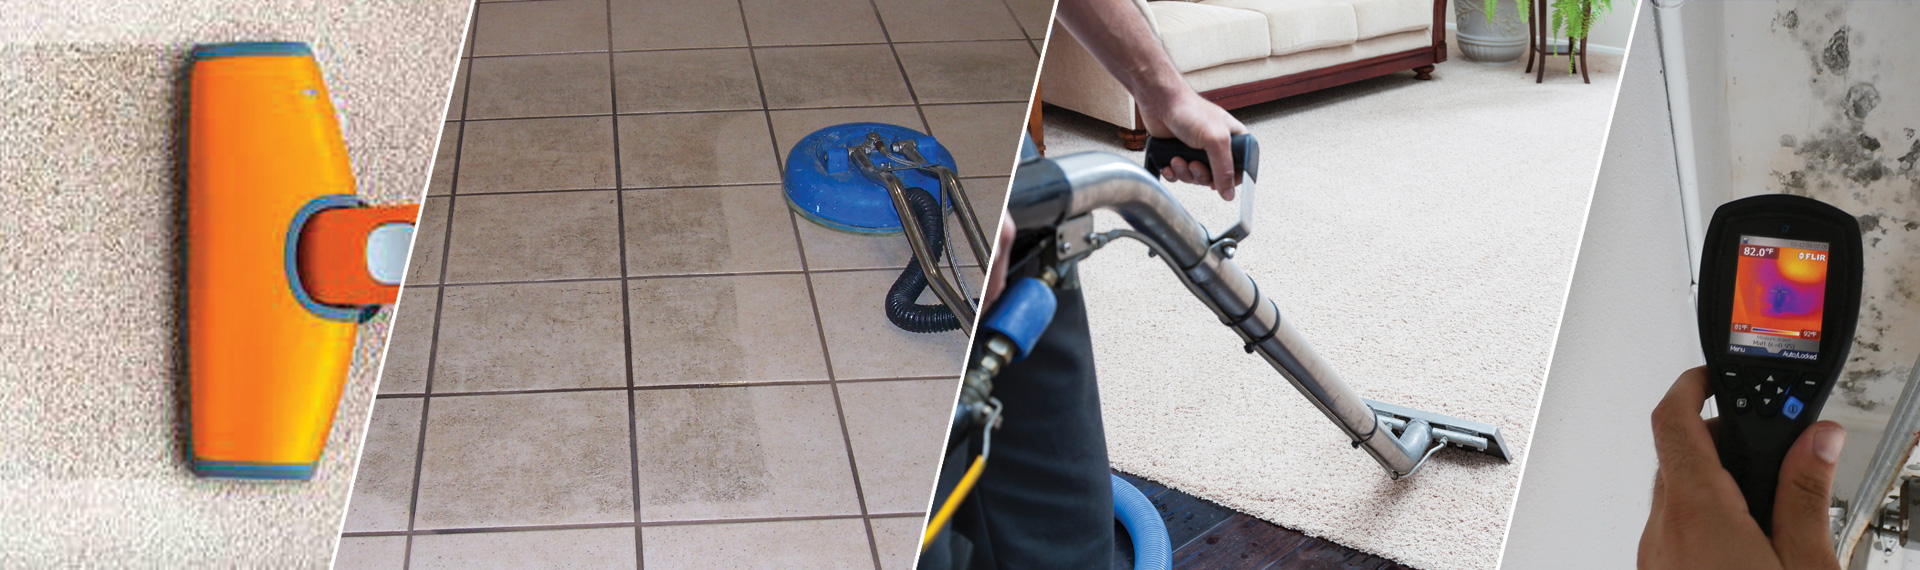 City Carpet Cleaners & Water Damage Restoration Houston TX